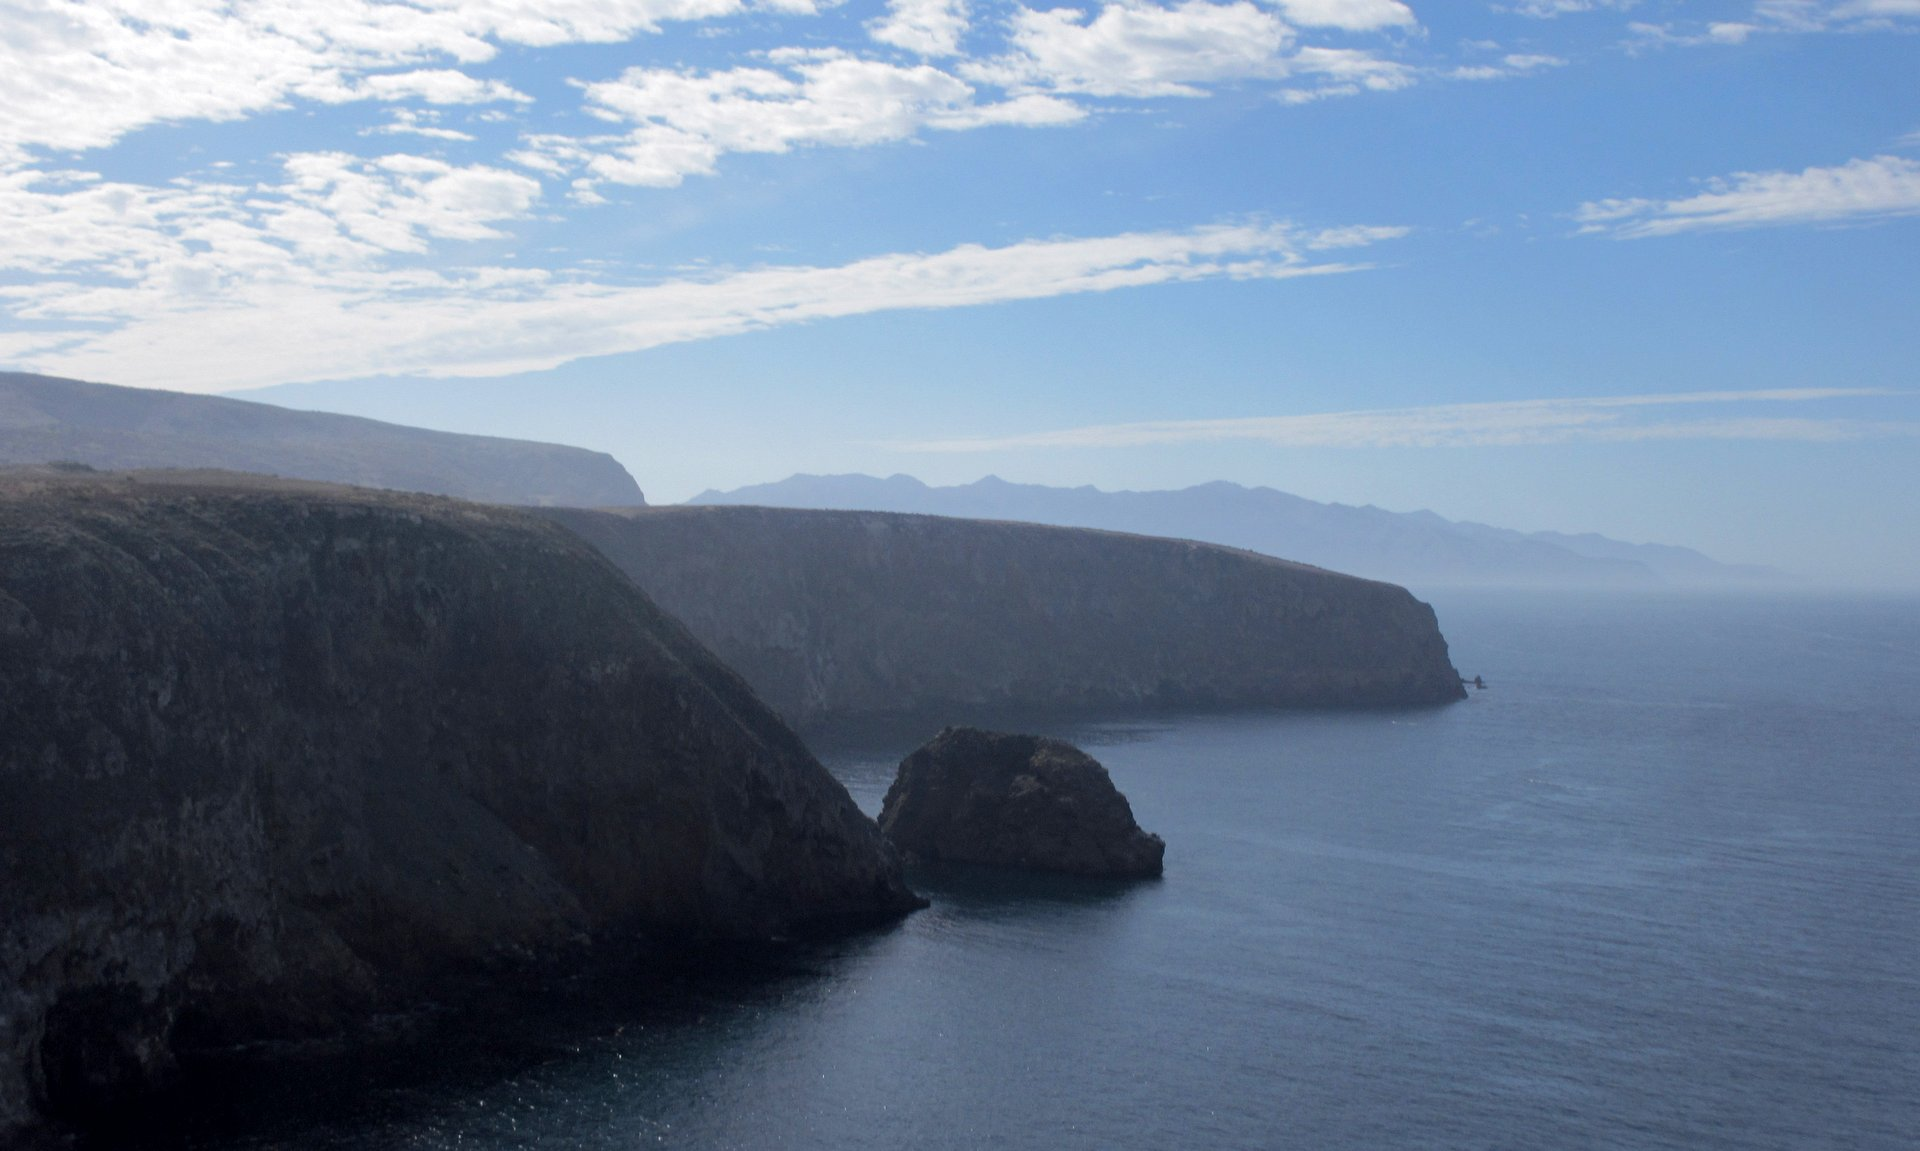 scenic view of Santa Cruz Island